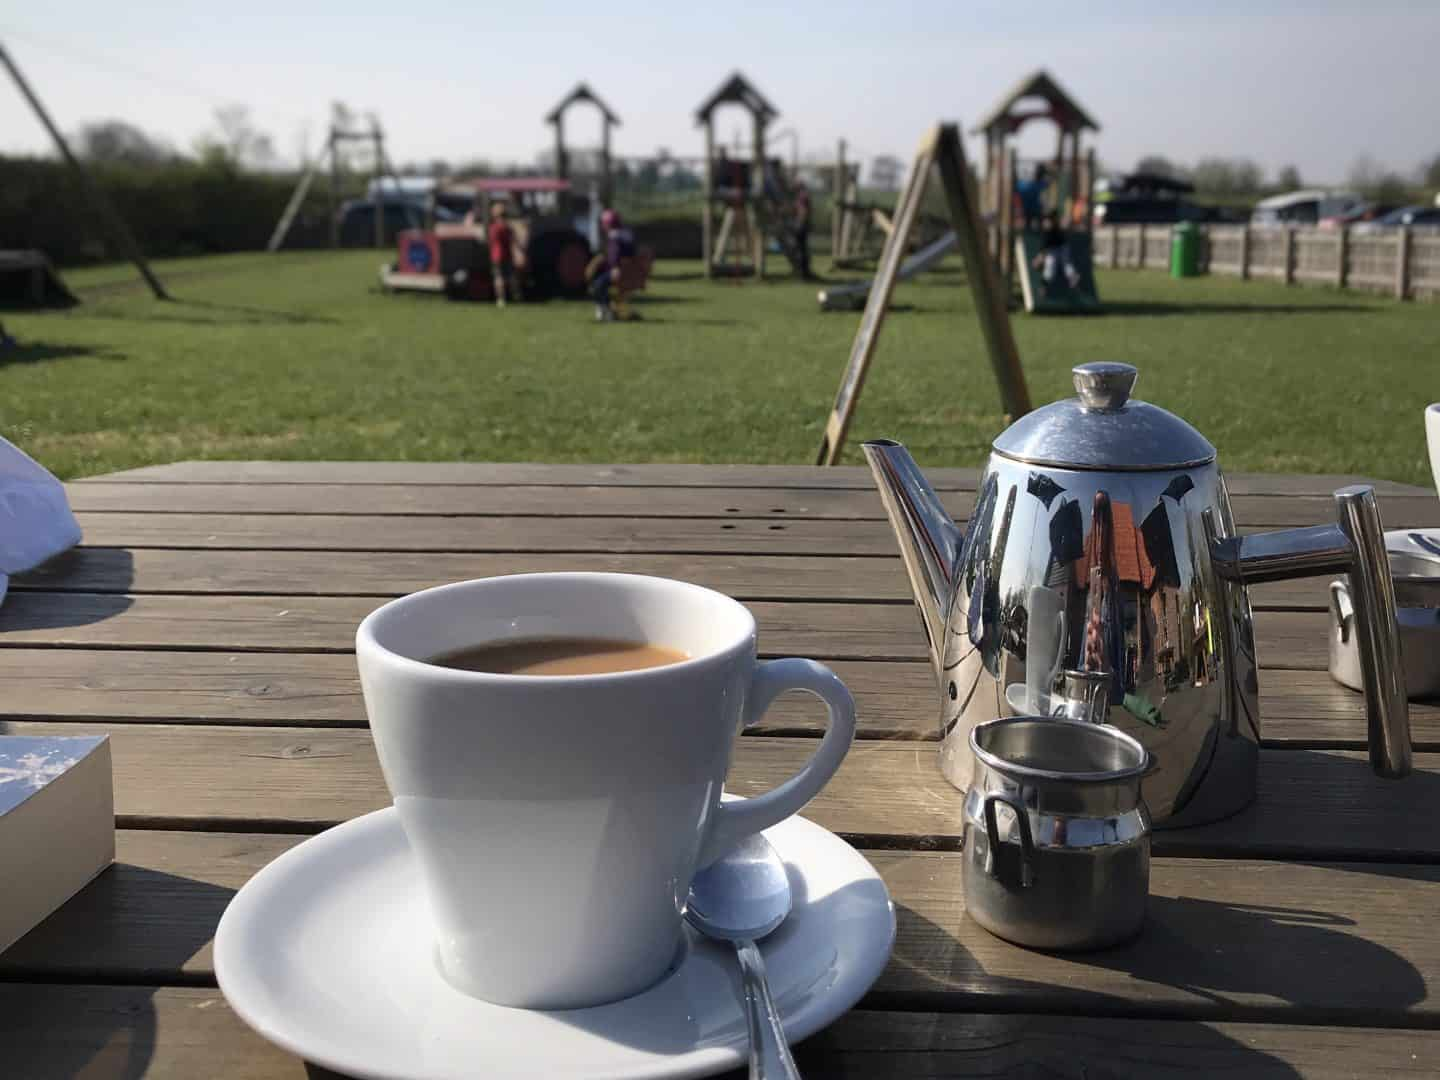 Enjoying some proper loose-leaf tea overlooking Haw Wood Farm's play area